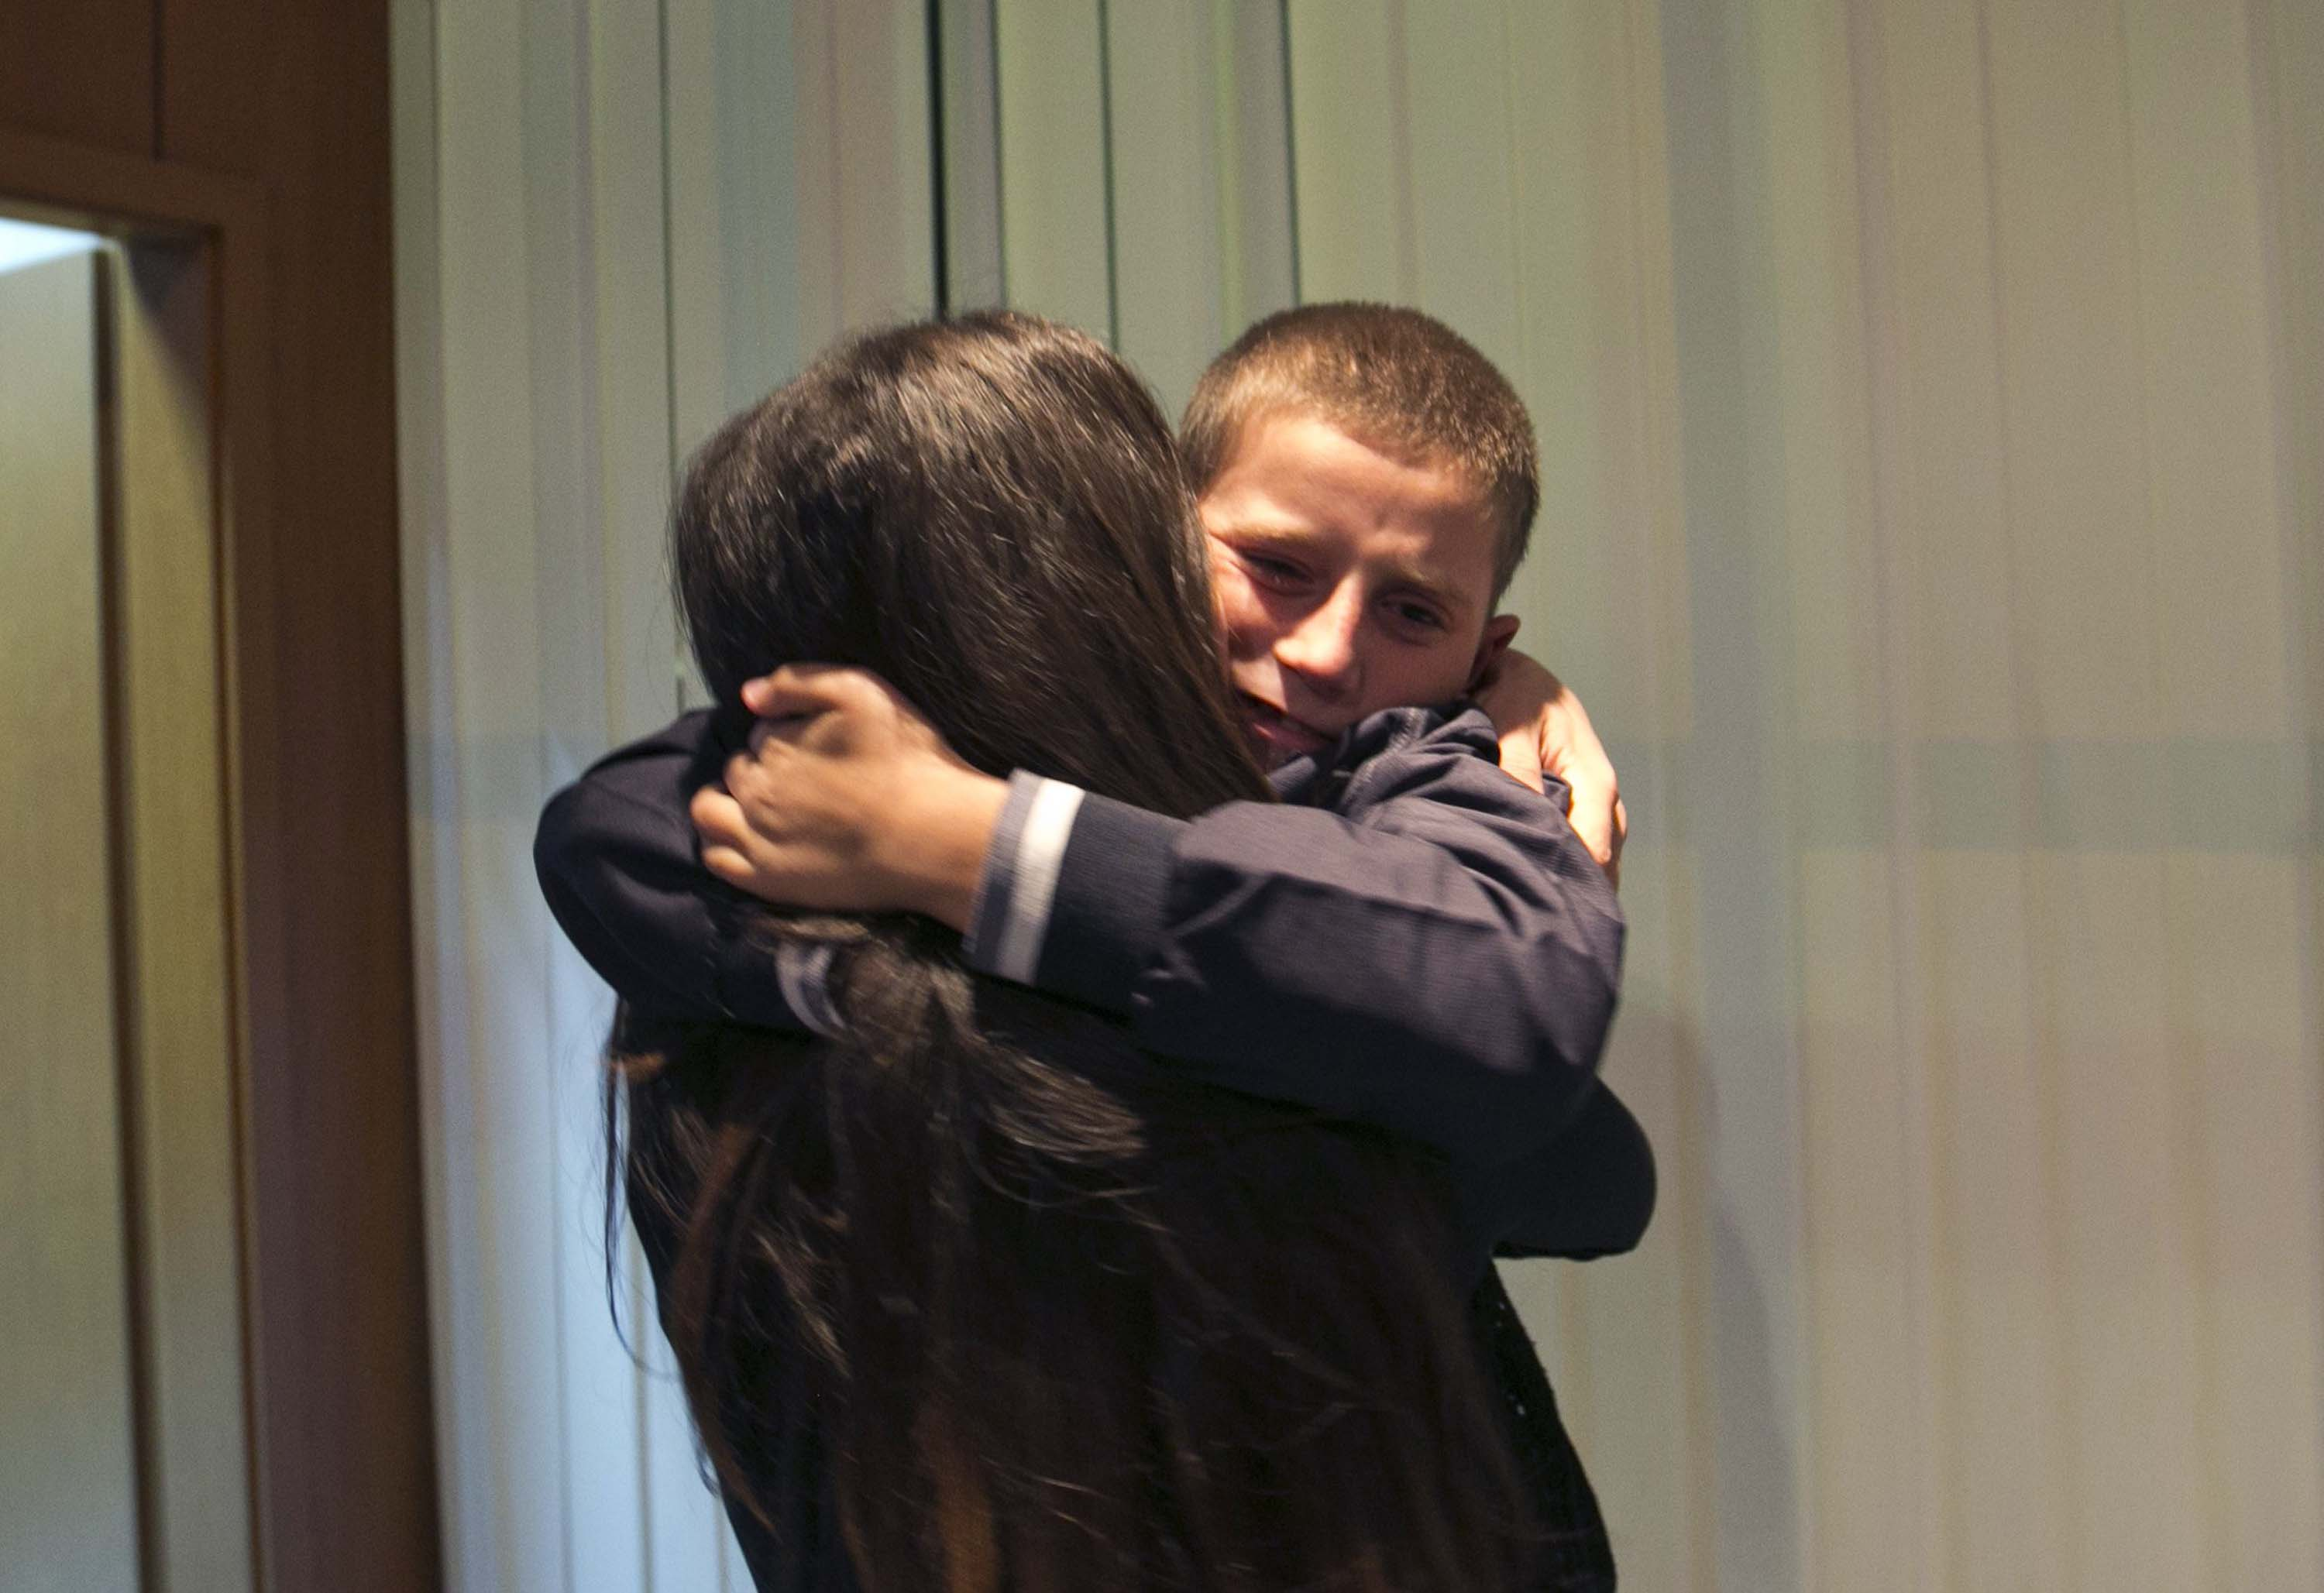 Pranvera Abazi kisses her son Erion Zena during their reunion at Kosovo's main airport upon his return to Kosovo's capital Pristina on Oct. 15, 2014.